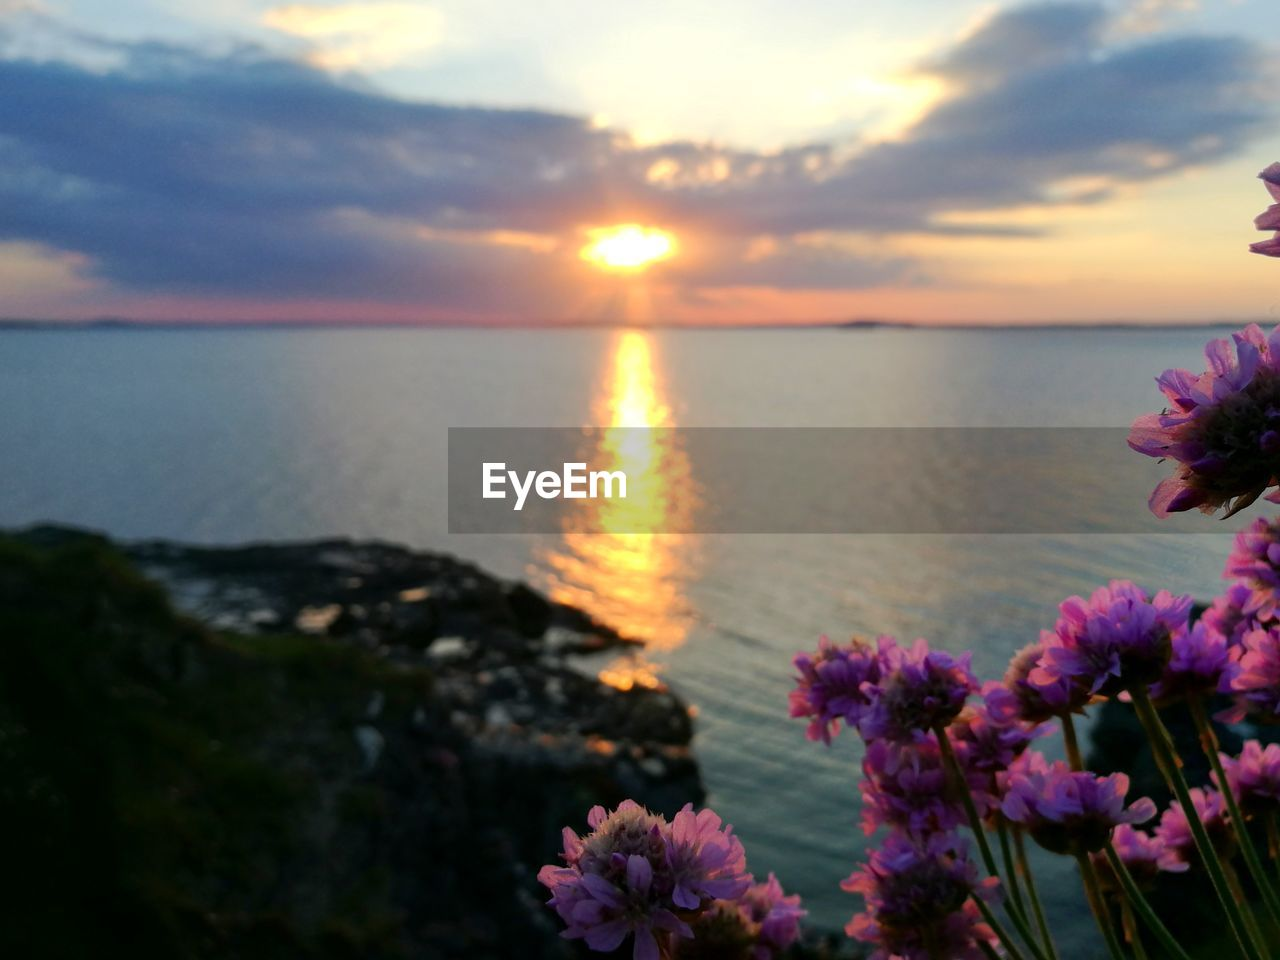 beauty in nature, sunset, nature, sky, sea, scenics, water, flower, tranquility, sun, horizon over water, tranquil scene, cloud - sky, no people, plant, outdoors, sunlight, growth, beach, fragility, close-up, freshness, day